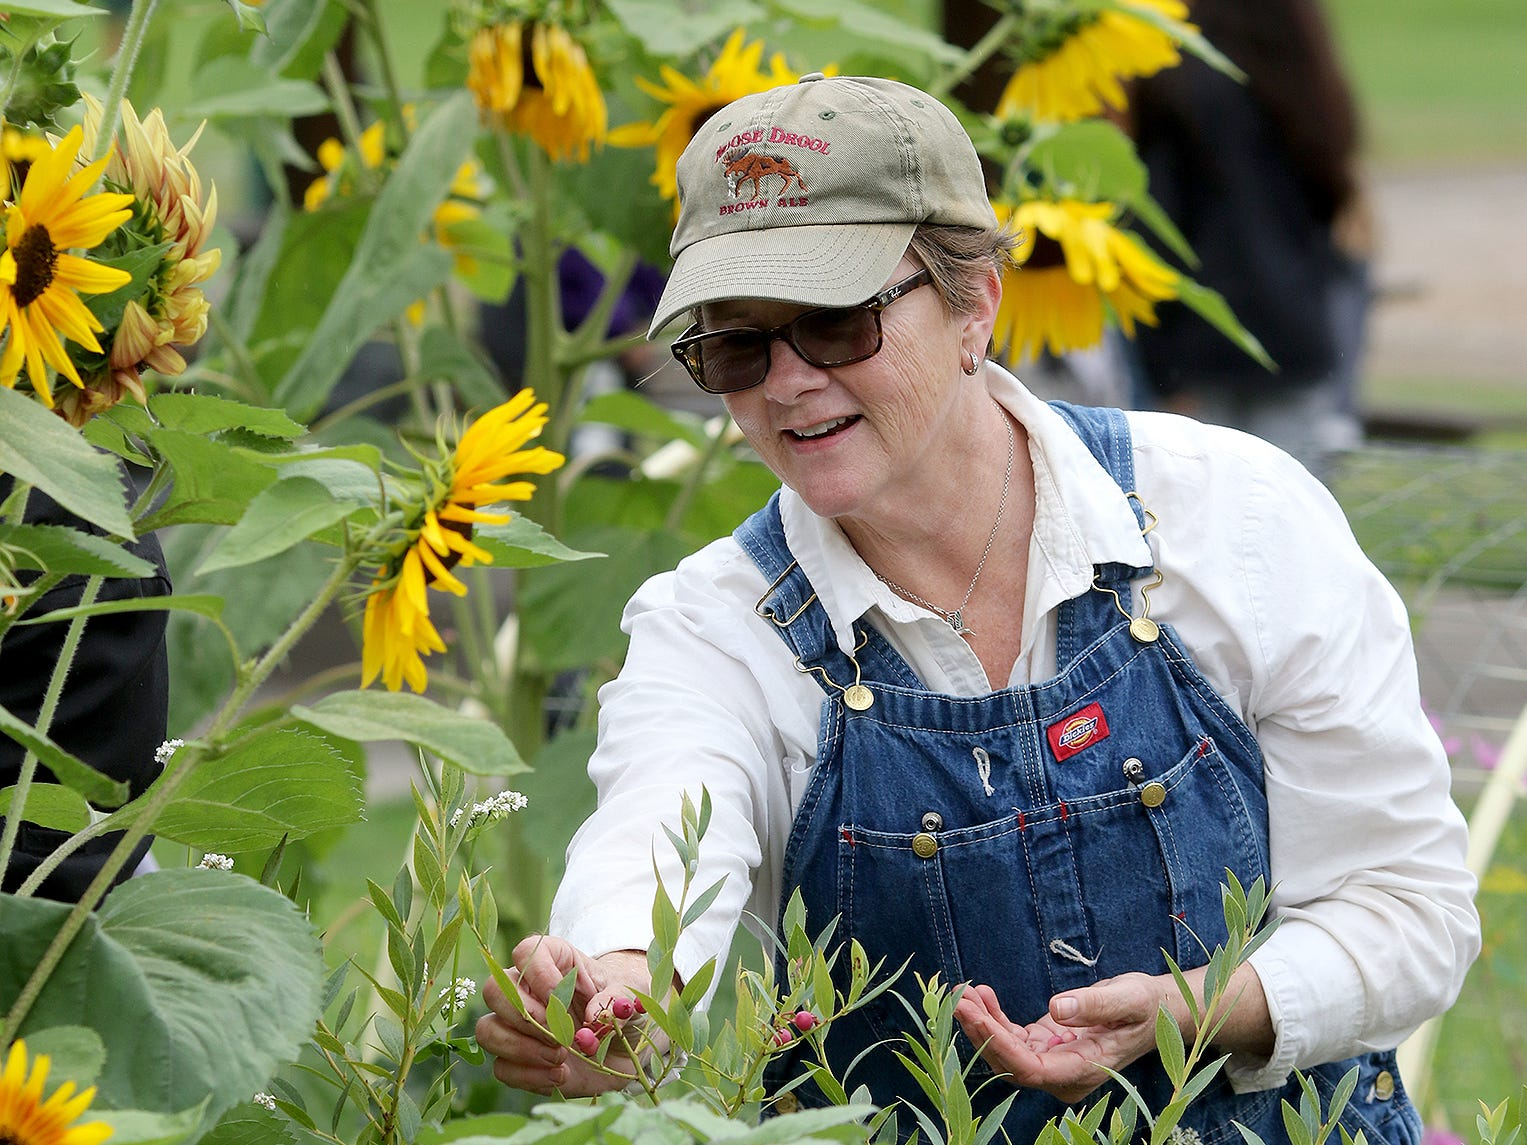 Ann Elberson, of the WSU Extension master gardeners, program picks pink champagne blueberries surrounded by sunflowers, at Blueberry park in East Bremerton on Thursday, August 2, 2018.